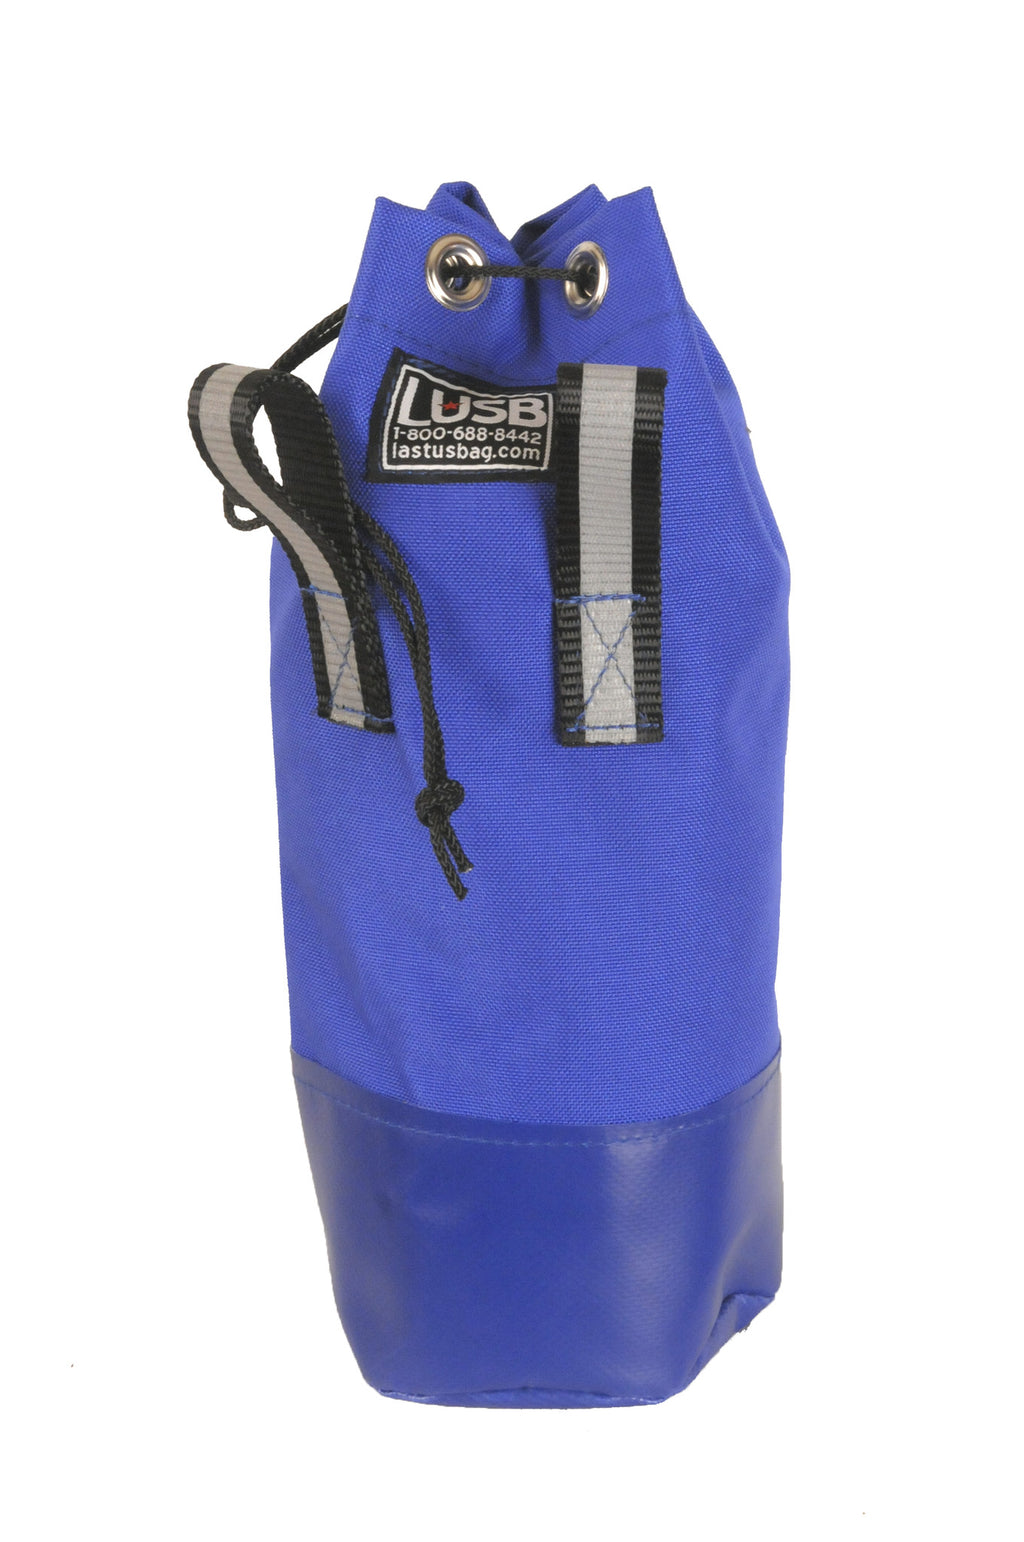 LUSB001 Personal Cinch Tool Bag